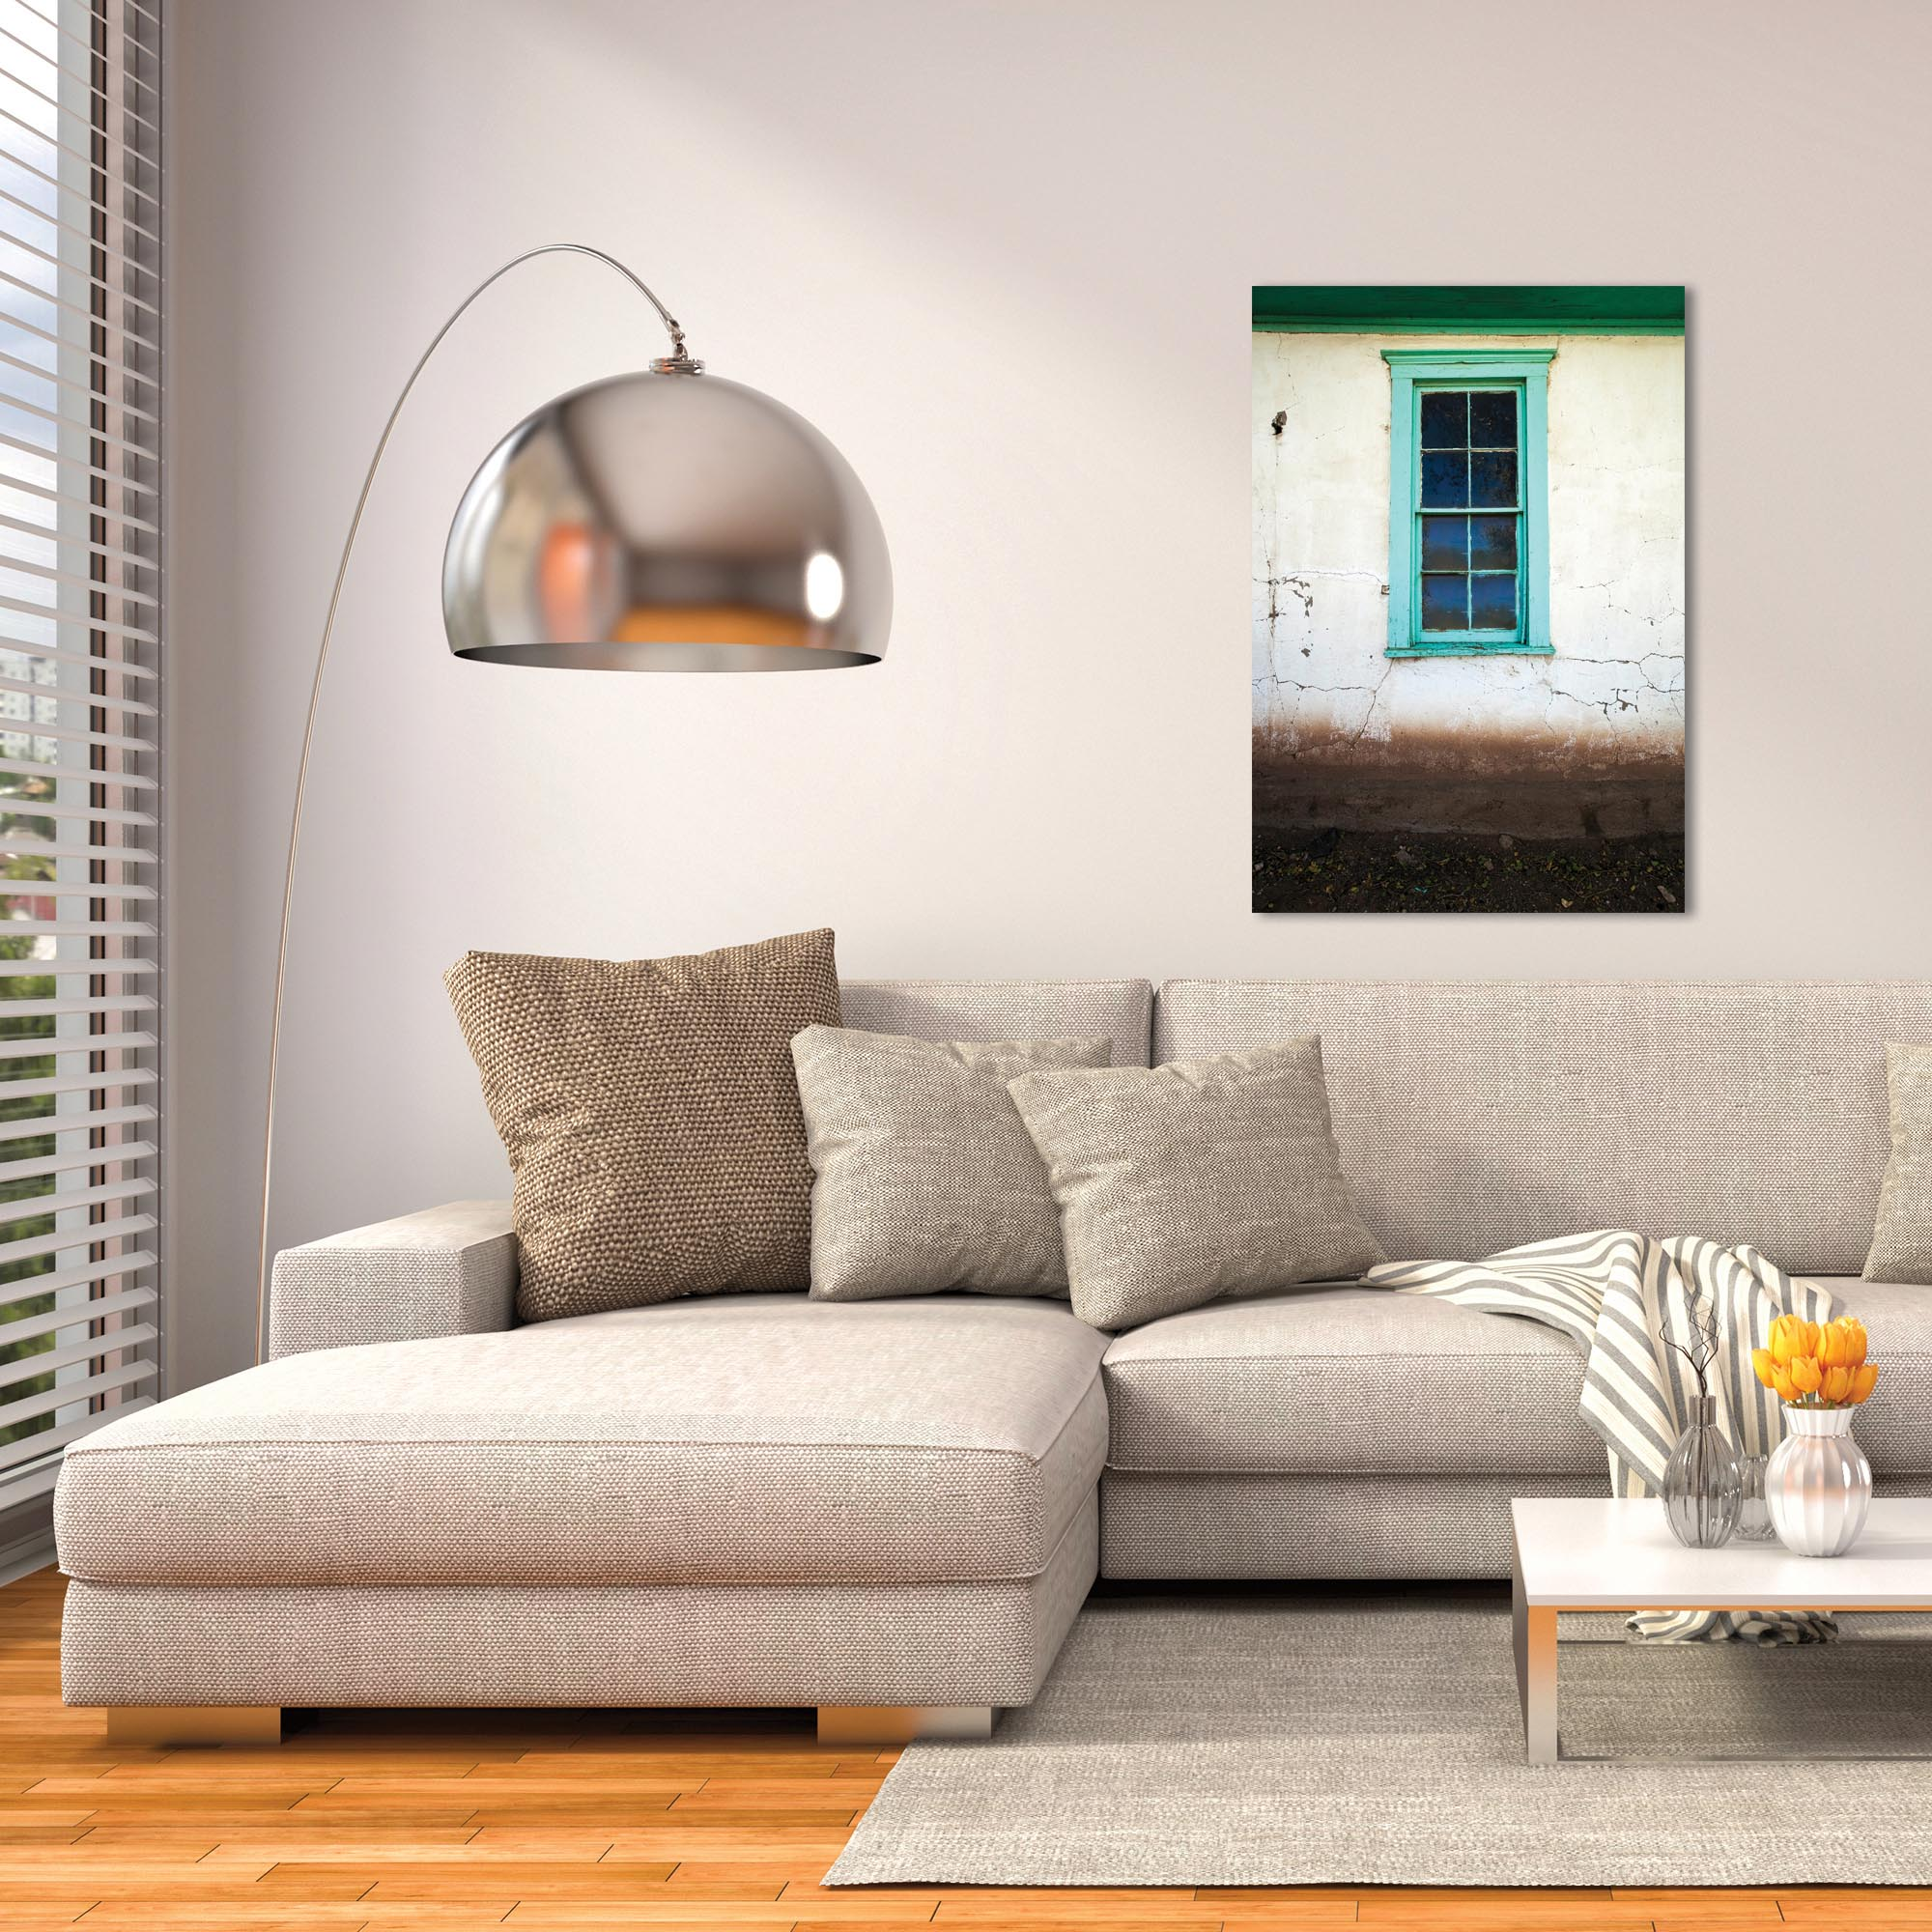 Eclectic Wall Art 'Bay Window' - Architecture Decor on Metal or Plexiglass - Lifestyle View